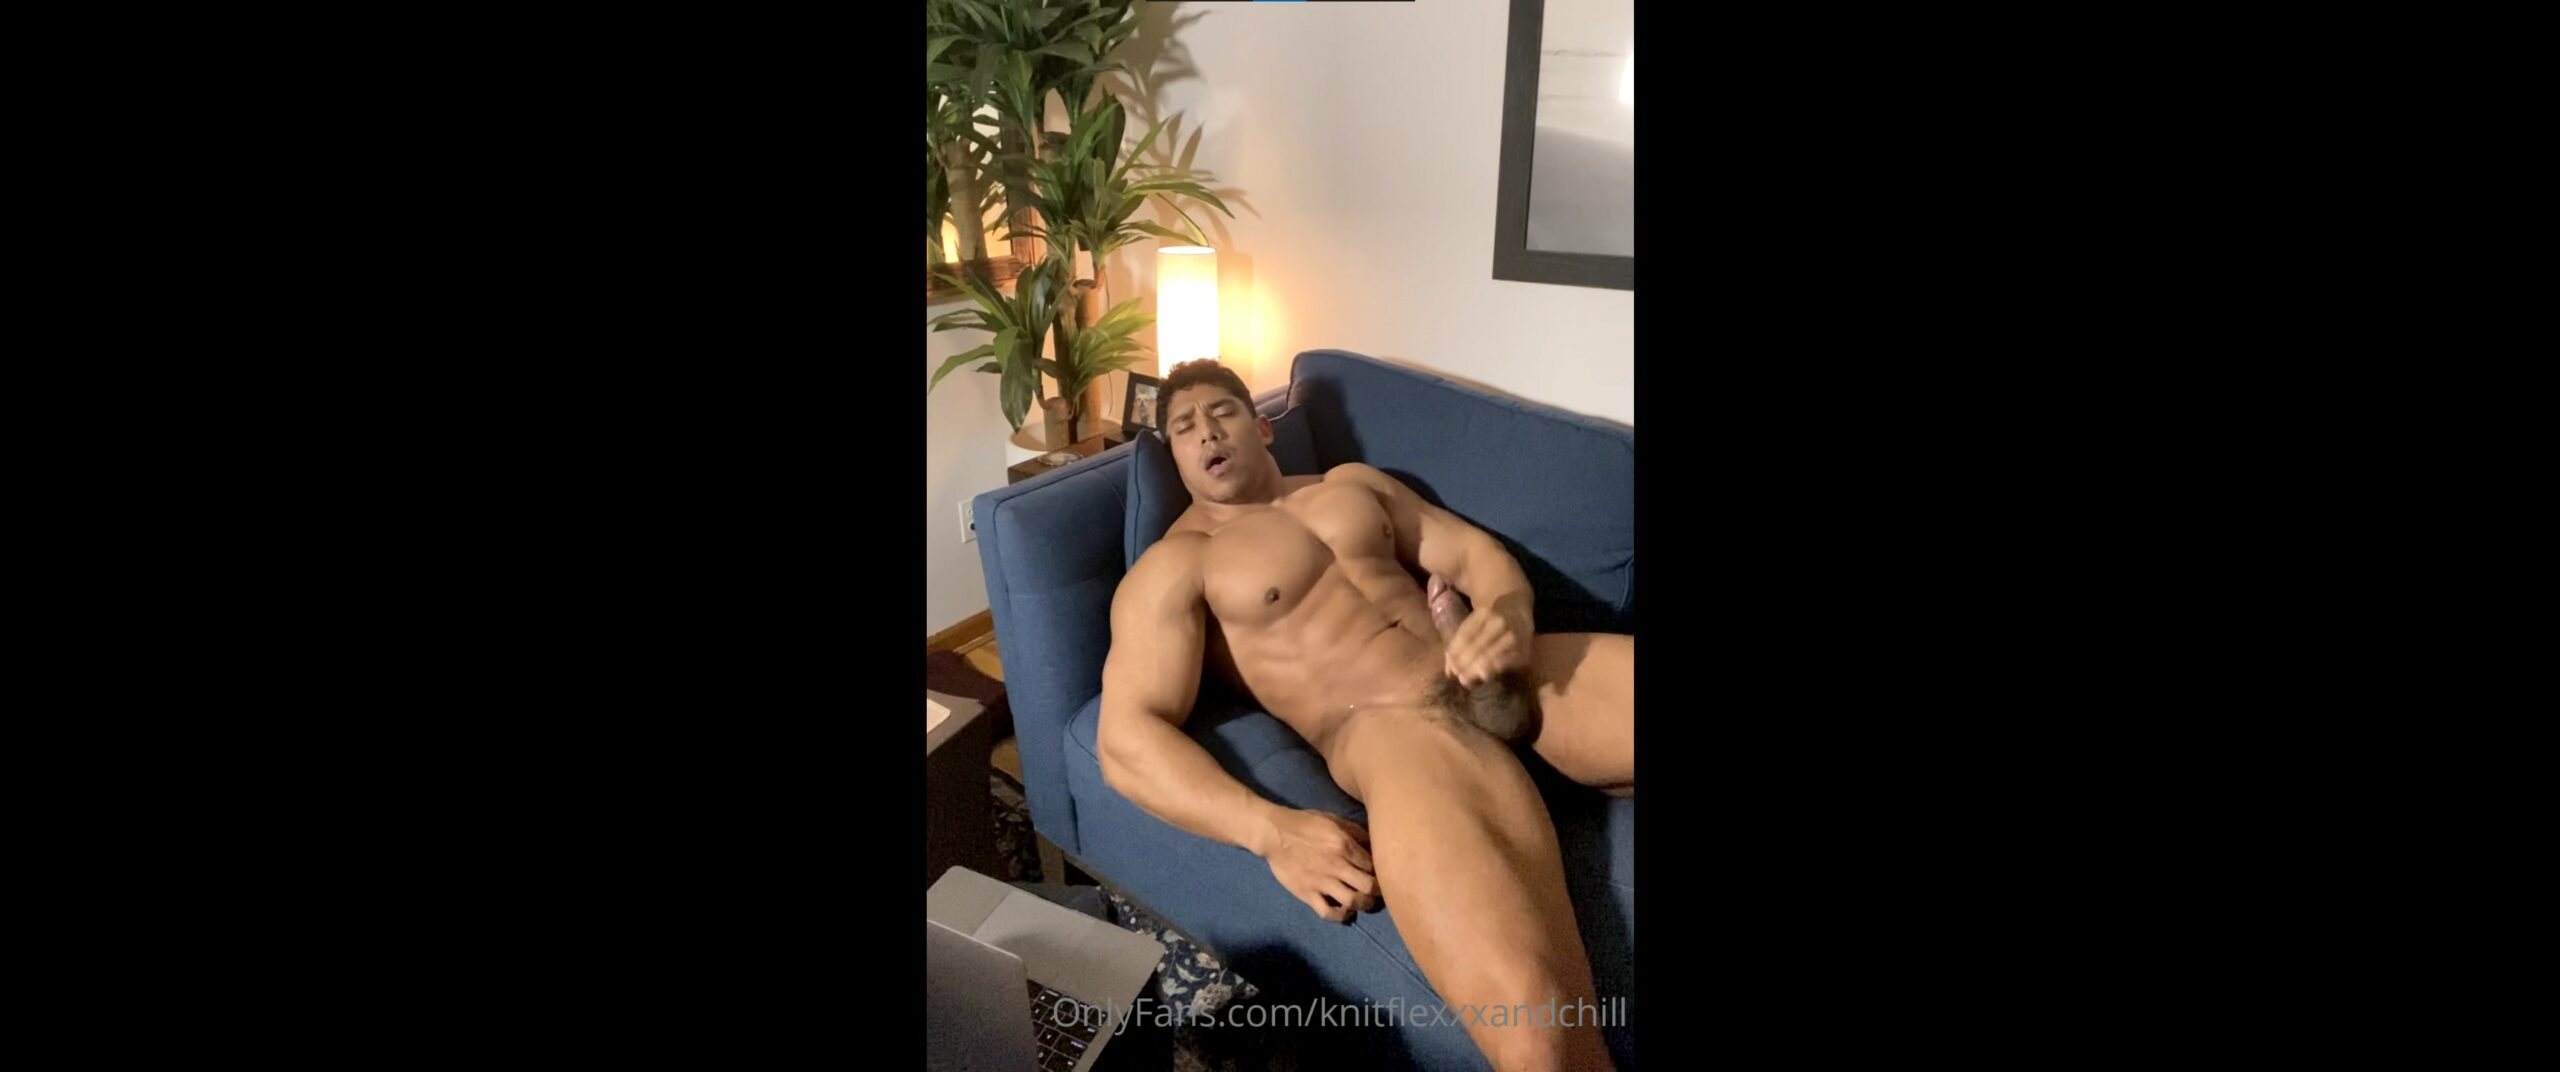 Jerking off and shooting a load over my abs – Edwin Acosta (knitflexxxandchill) – Gay for Fans – gayforfans.com